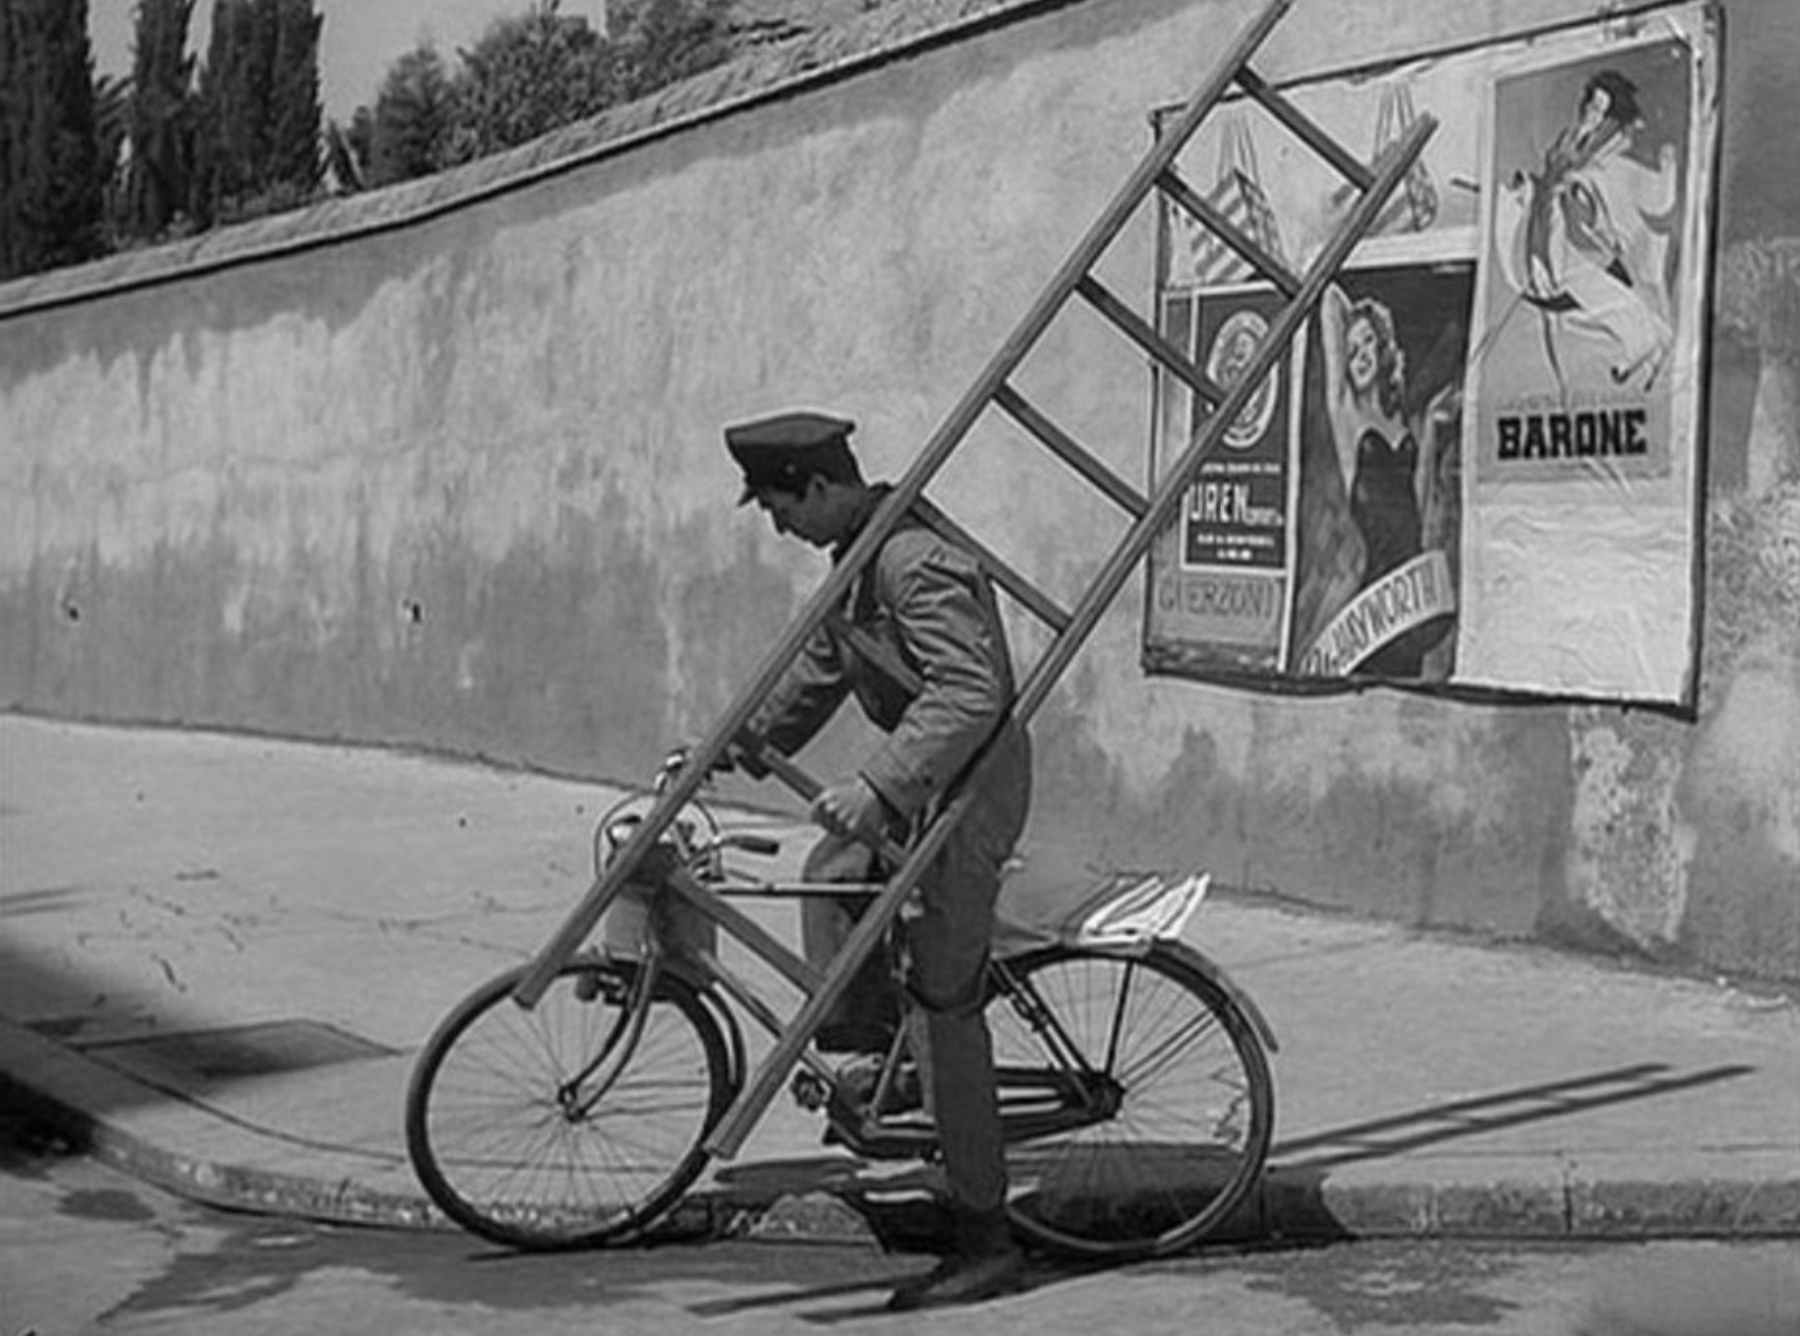 The Bicycle Thief Antonio with Ladder